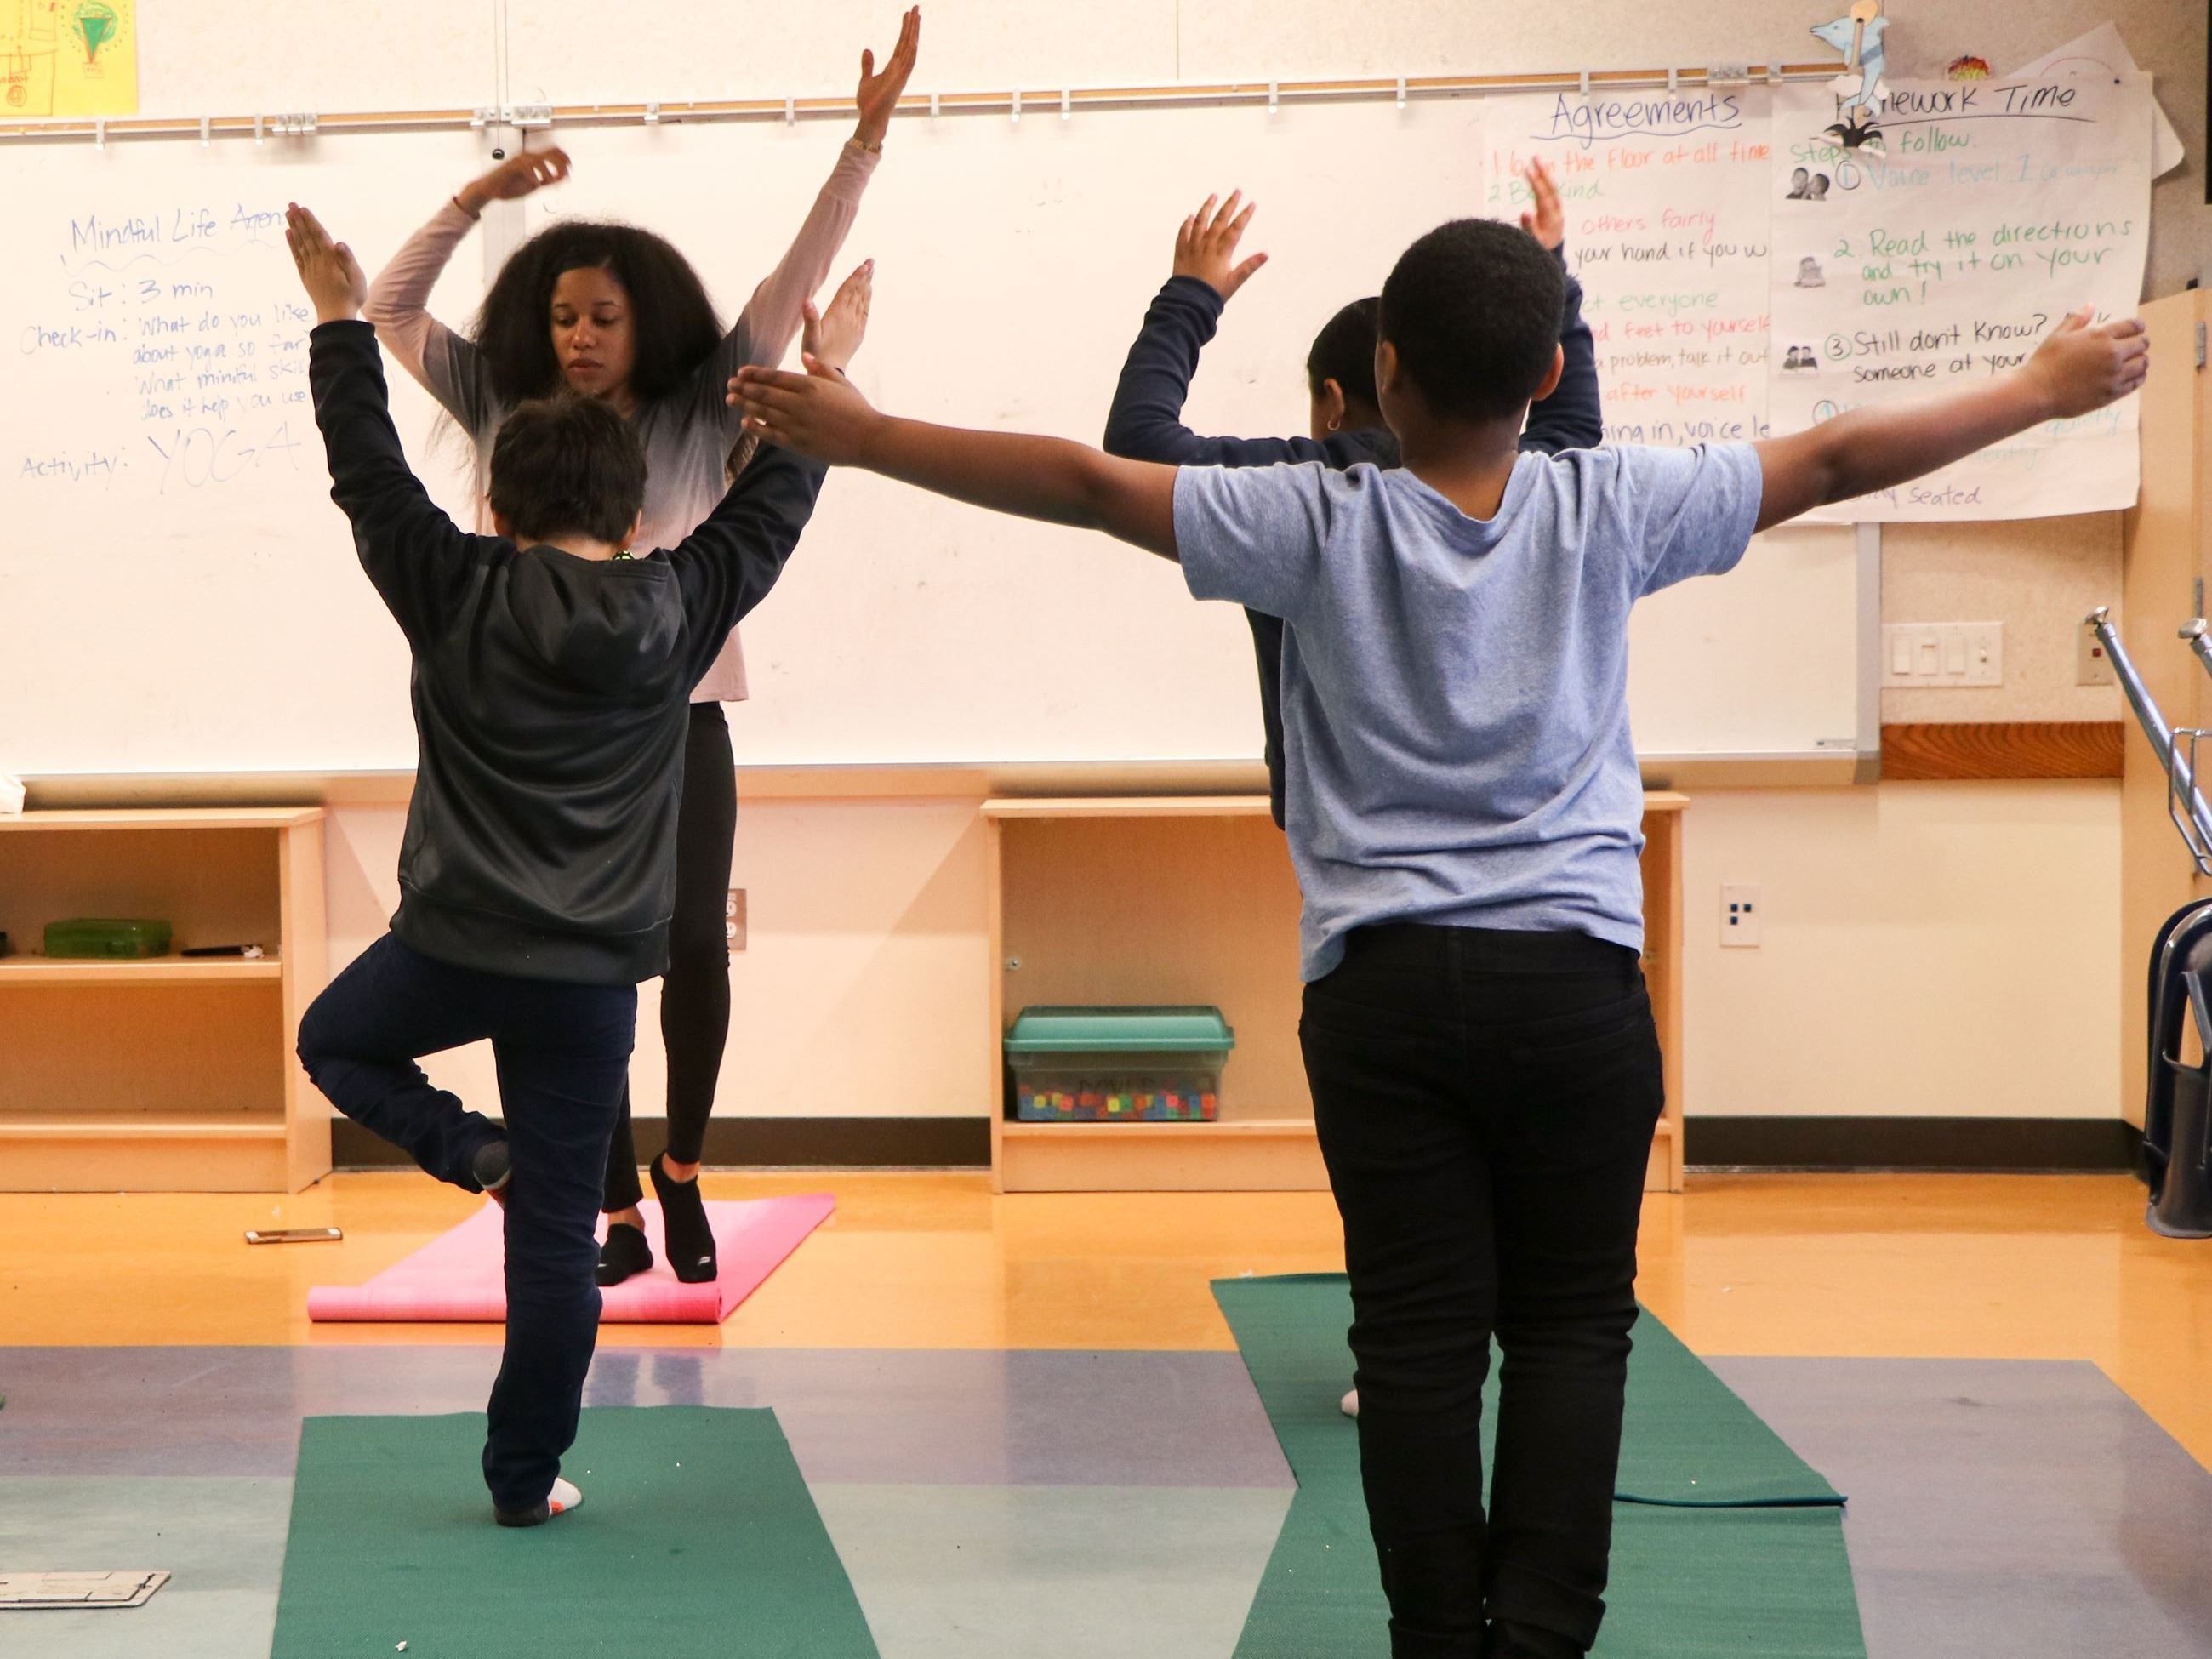 Students Practicing Yoga Poses in Mindful Life Group